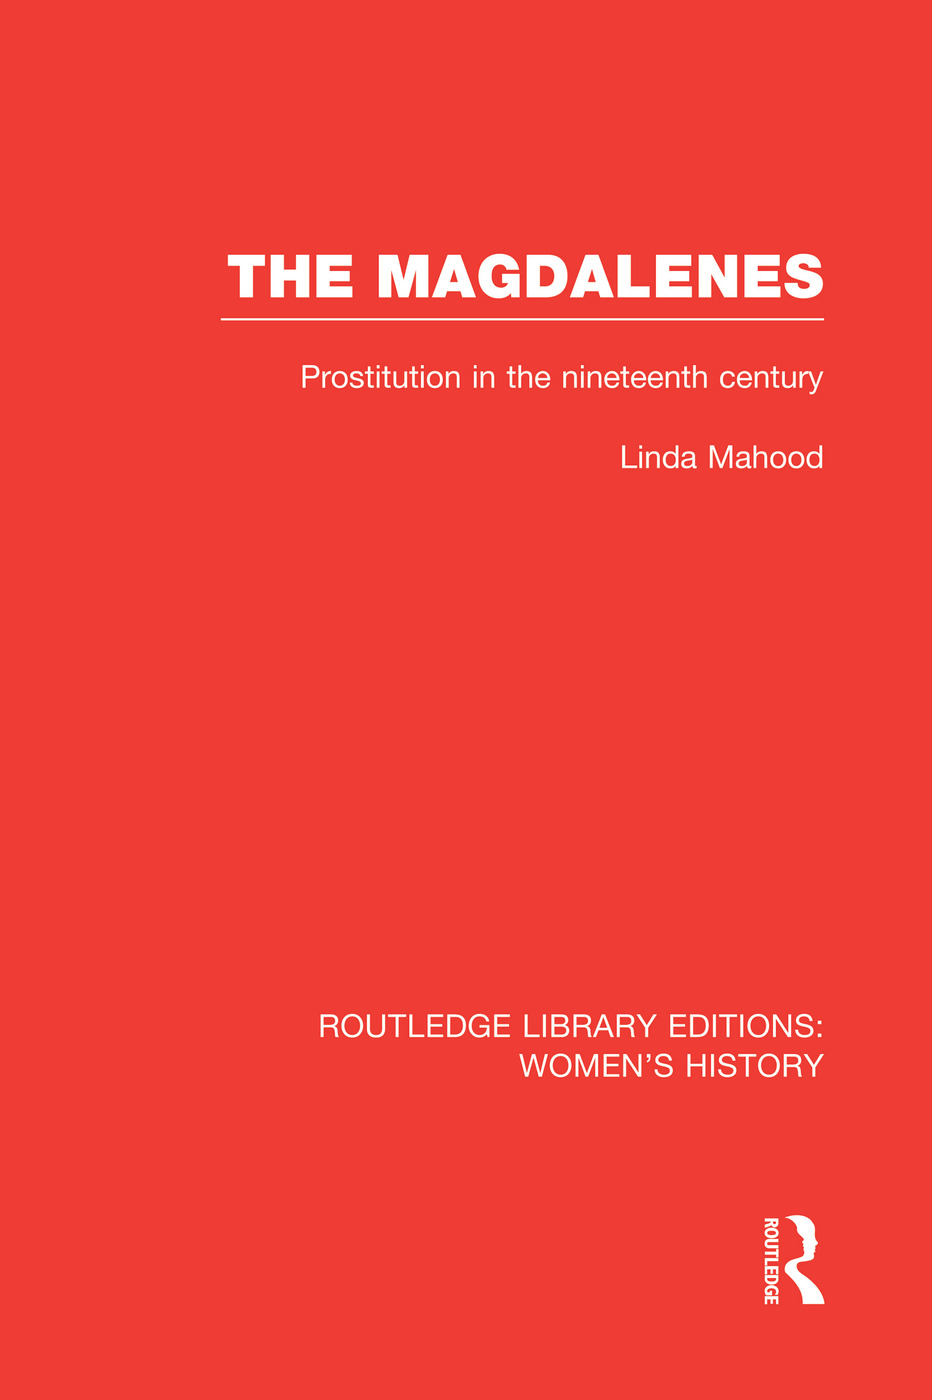 The Magdalenes: Prostitution in the Nineteenth Century book cover